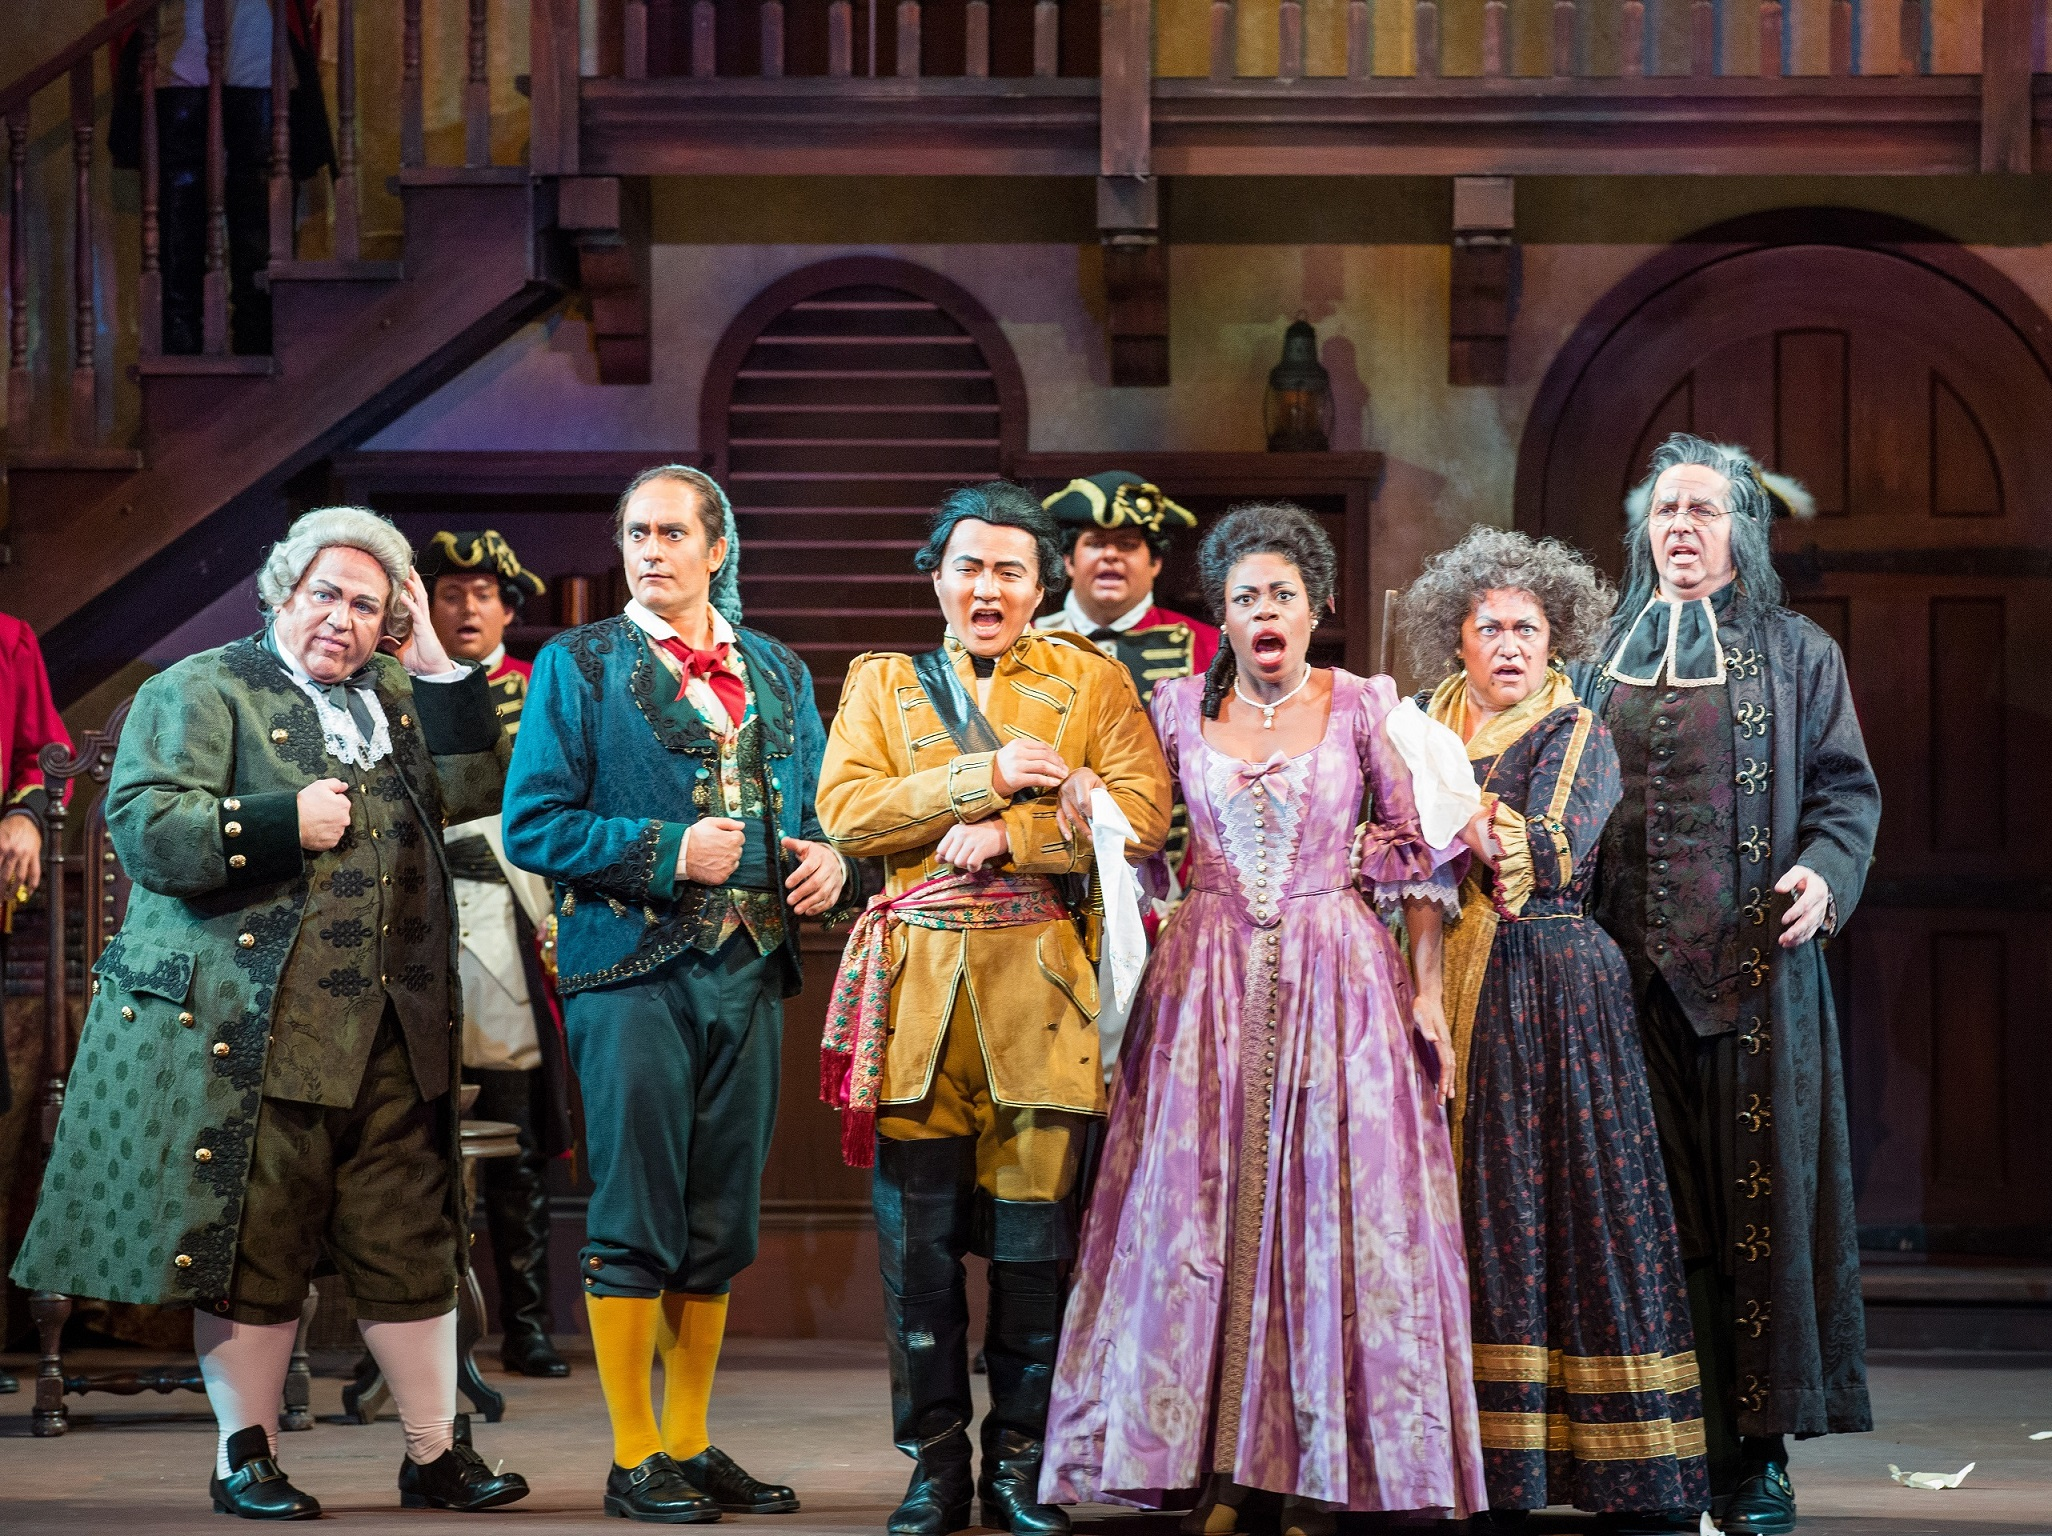 Sarasota Opera kicks off its fall season with The Barber of Seville